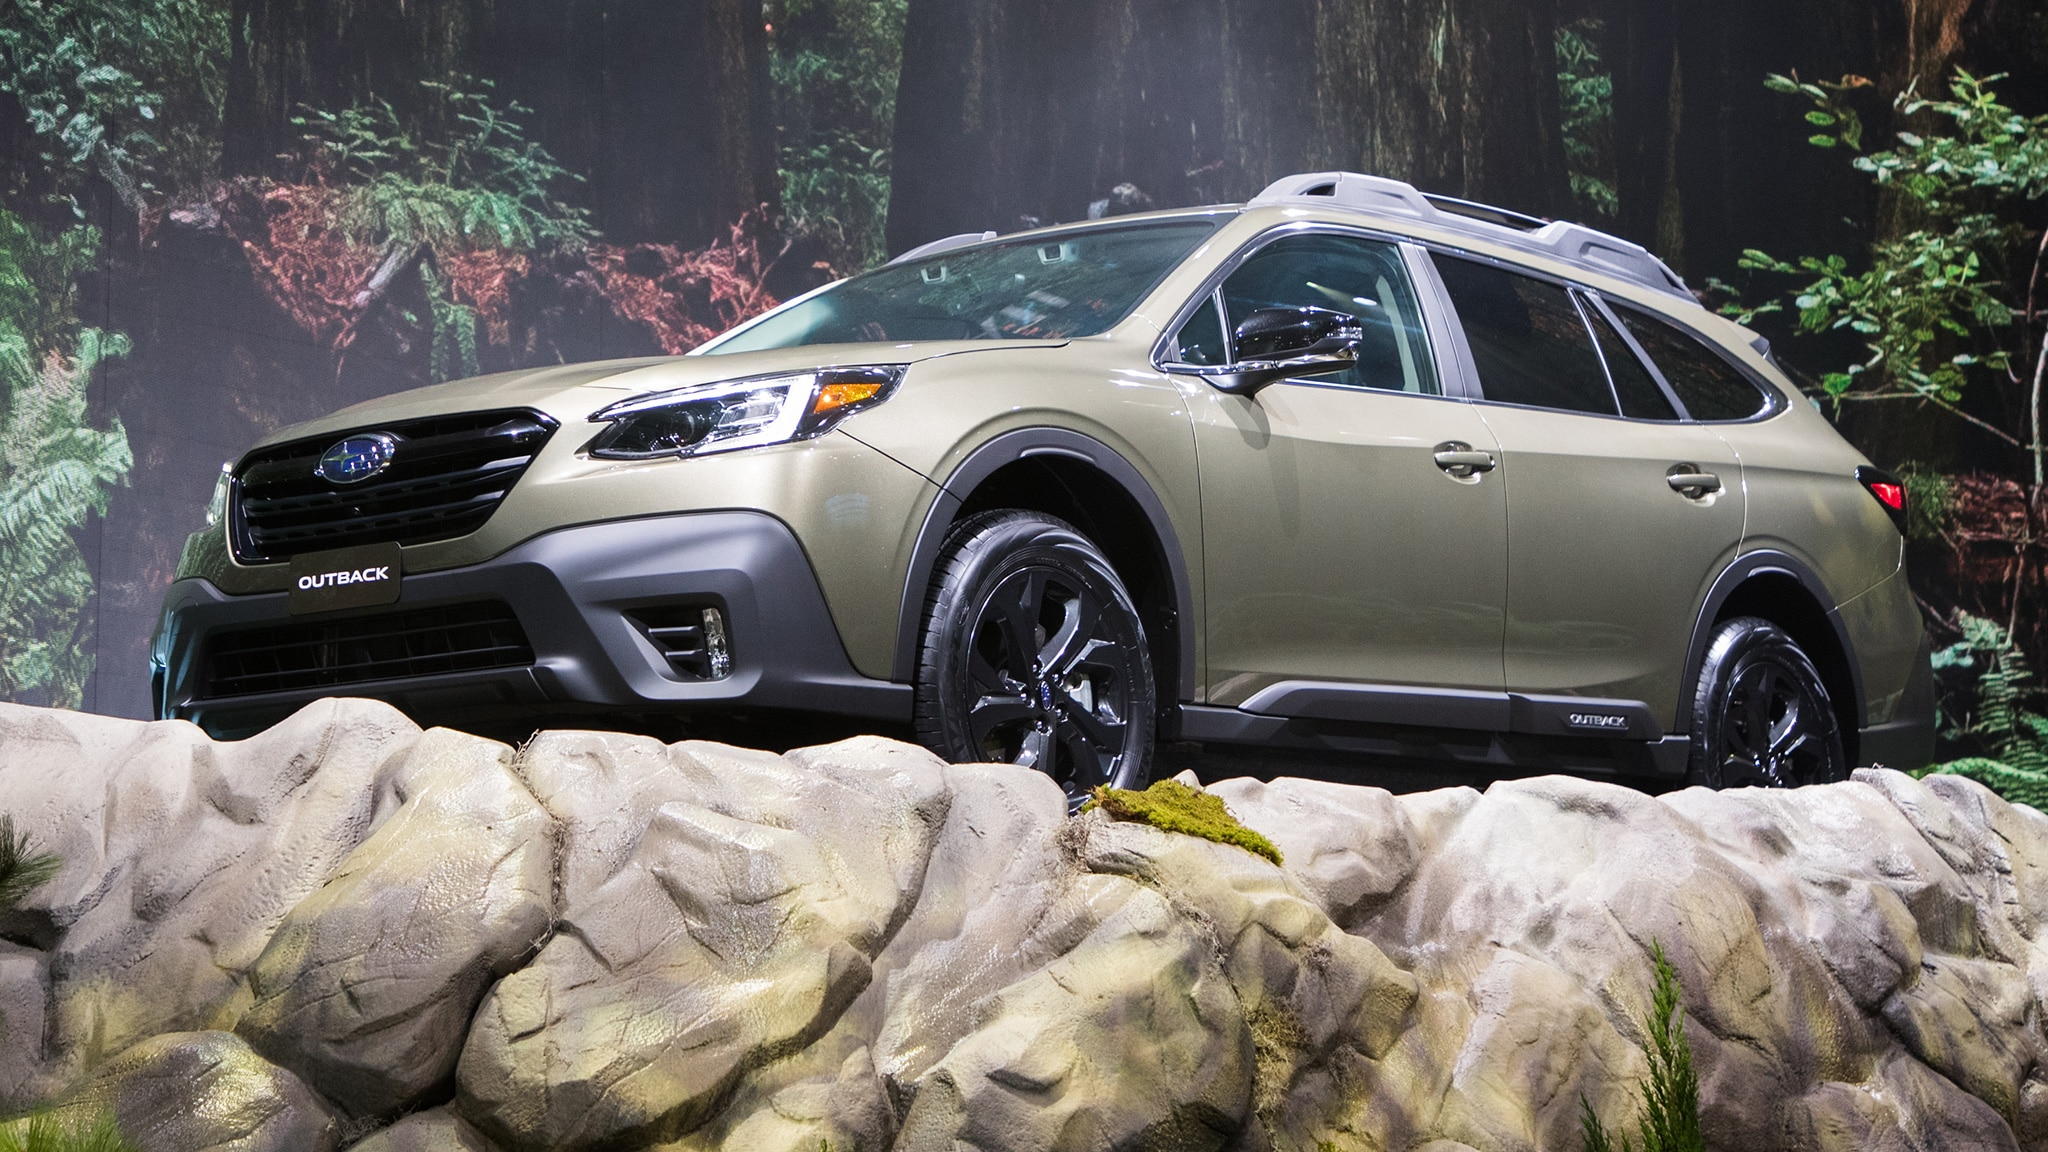 All-New 2020 Subaru Outback: Huge Screen, Big Safety, 260 HP